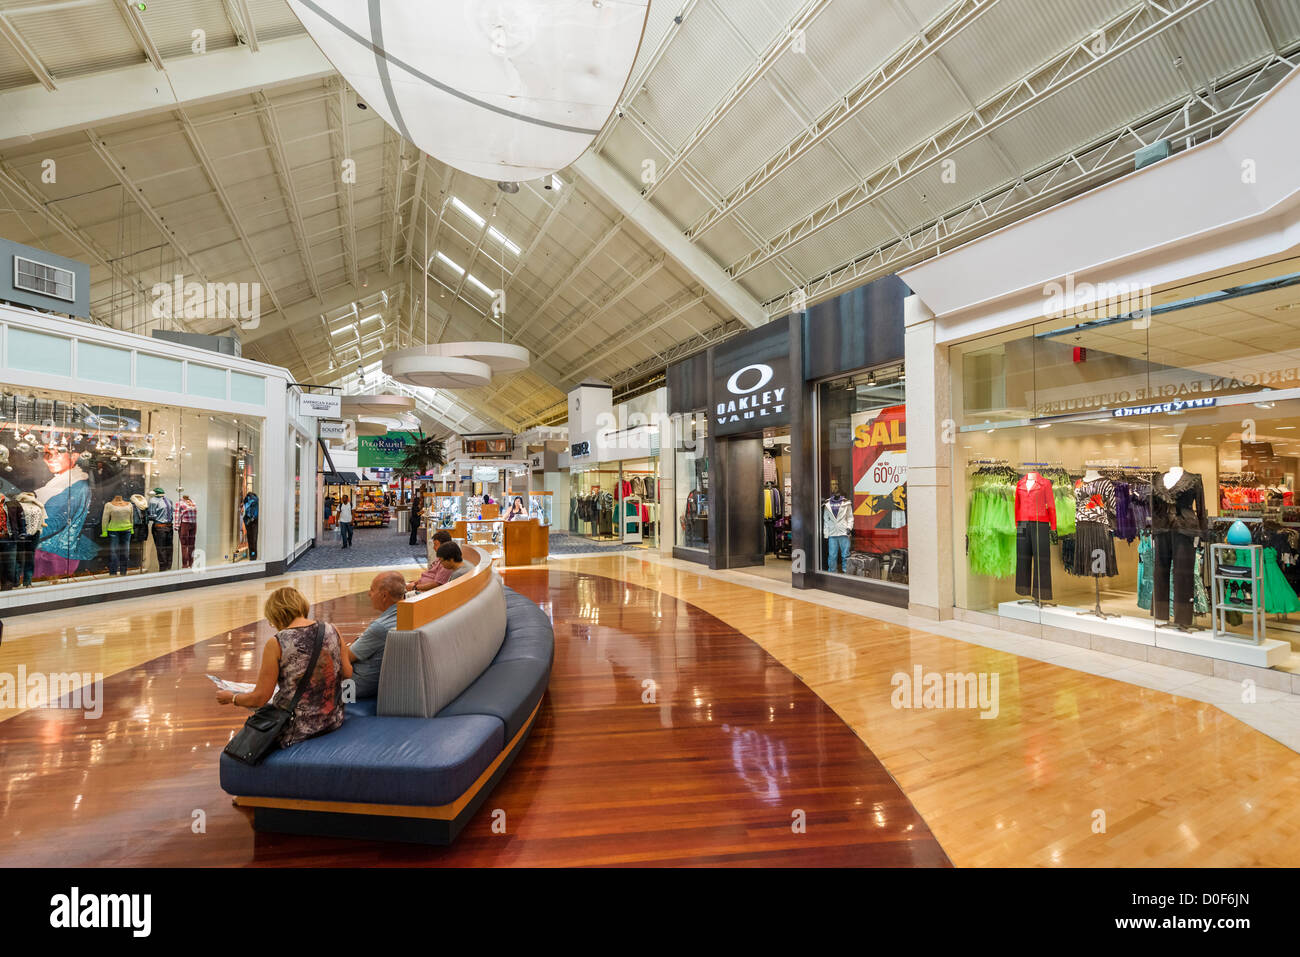 Interior of the Sawgrass Mills shopping mall, Sunrise, Broward County, Florida, USA - Stock Image